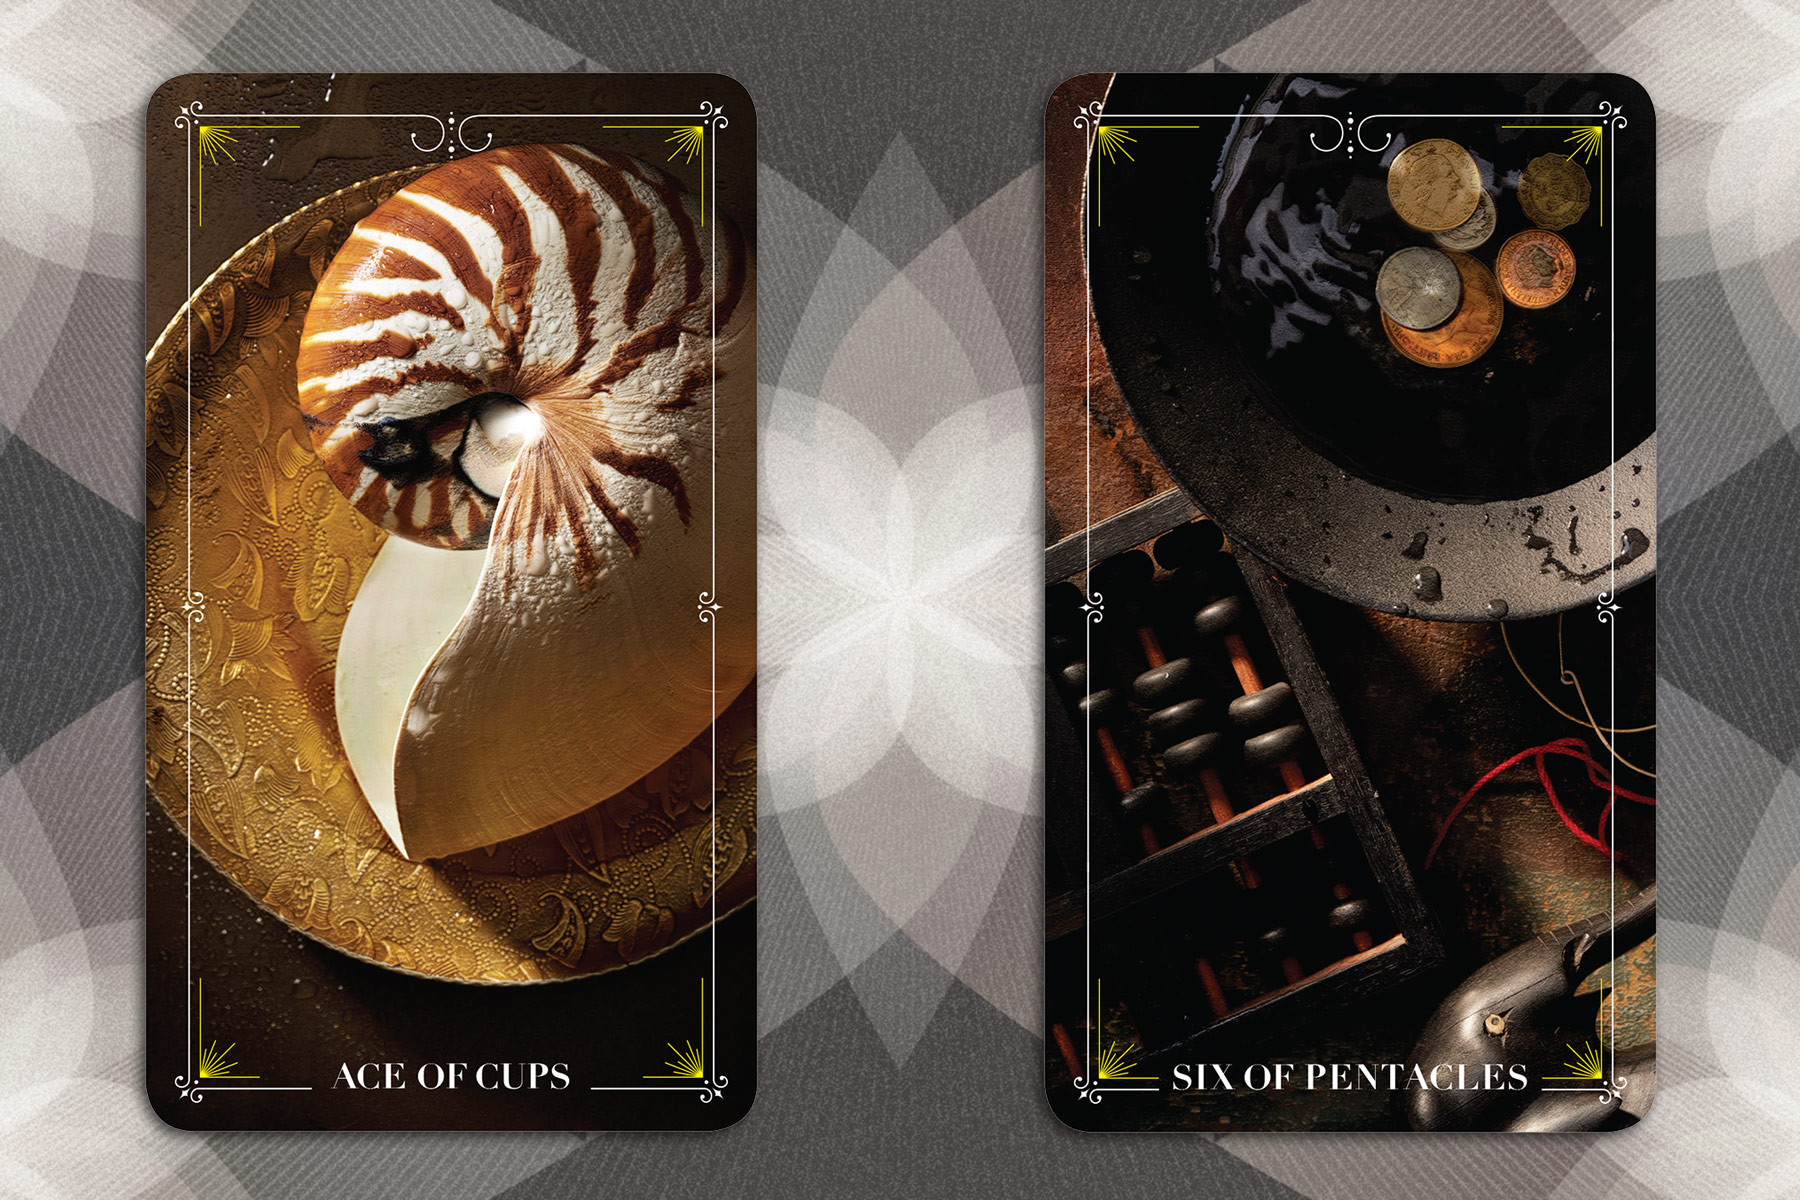 012_BloomTarot_Cups_Pentacles